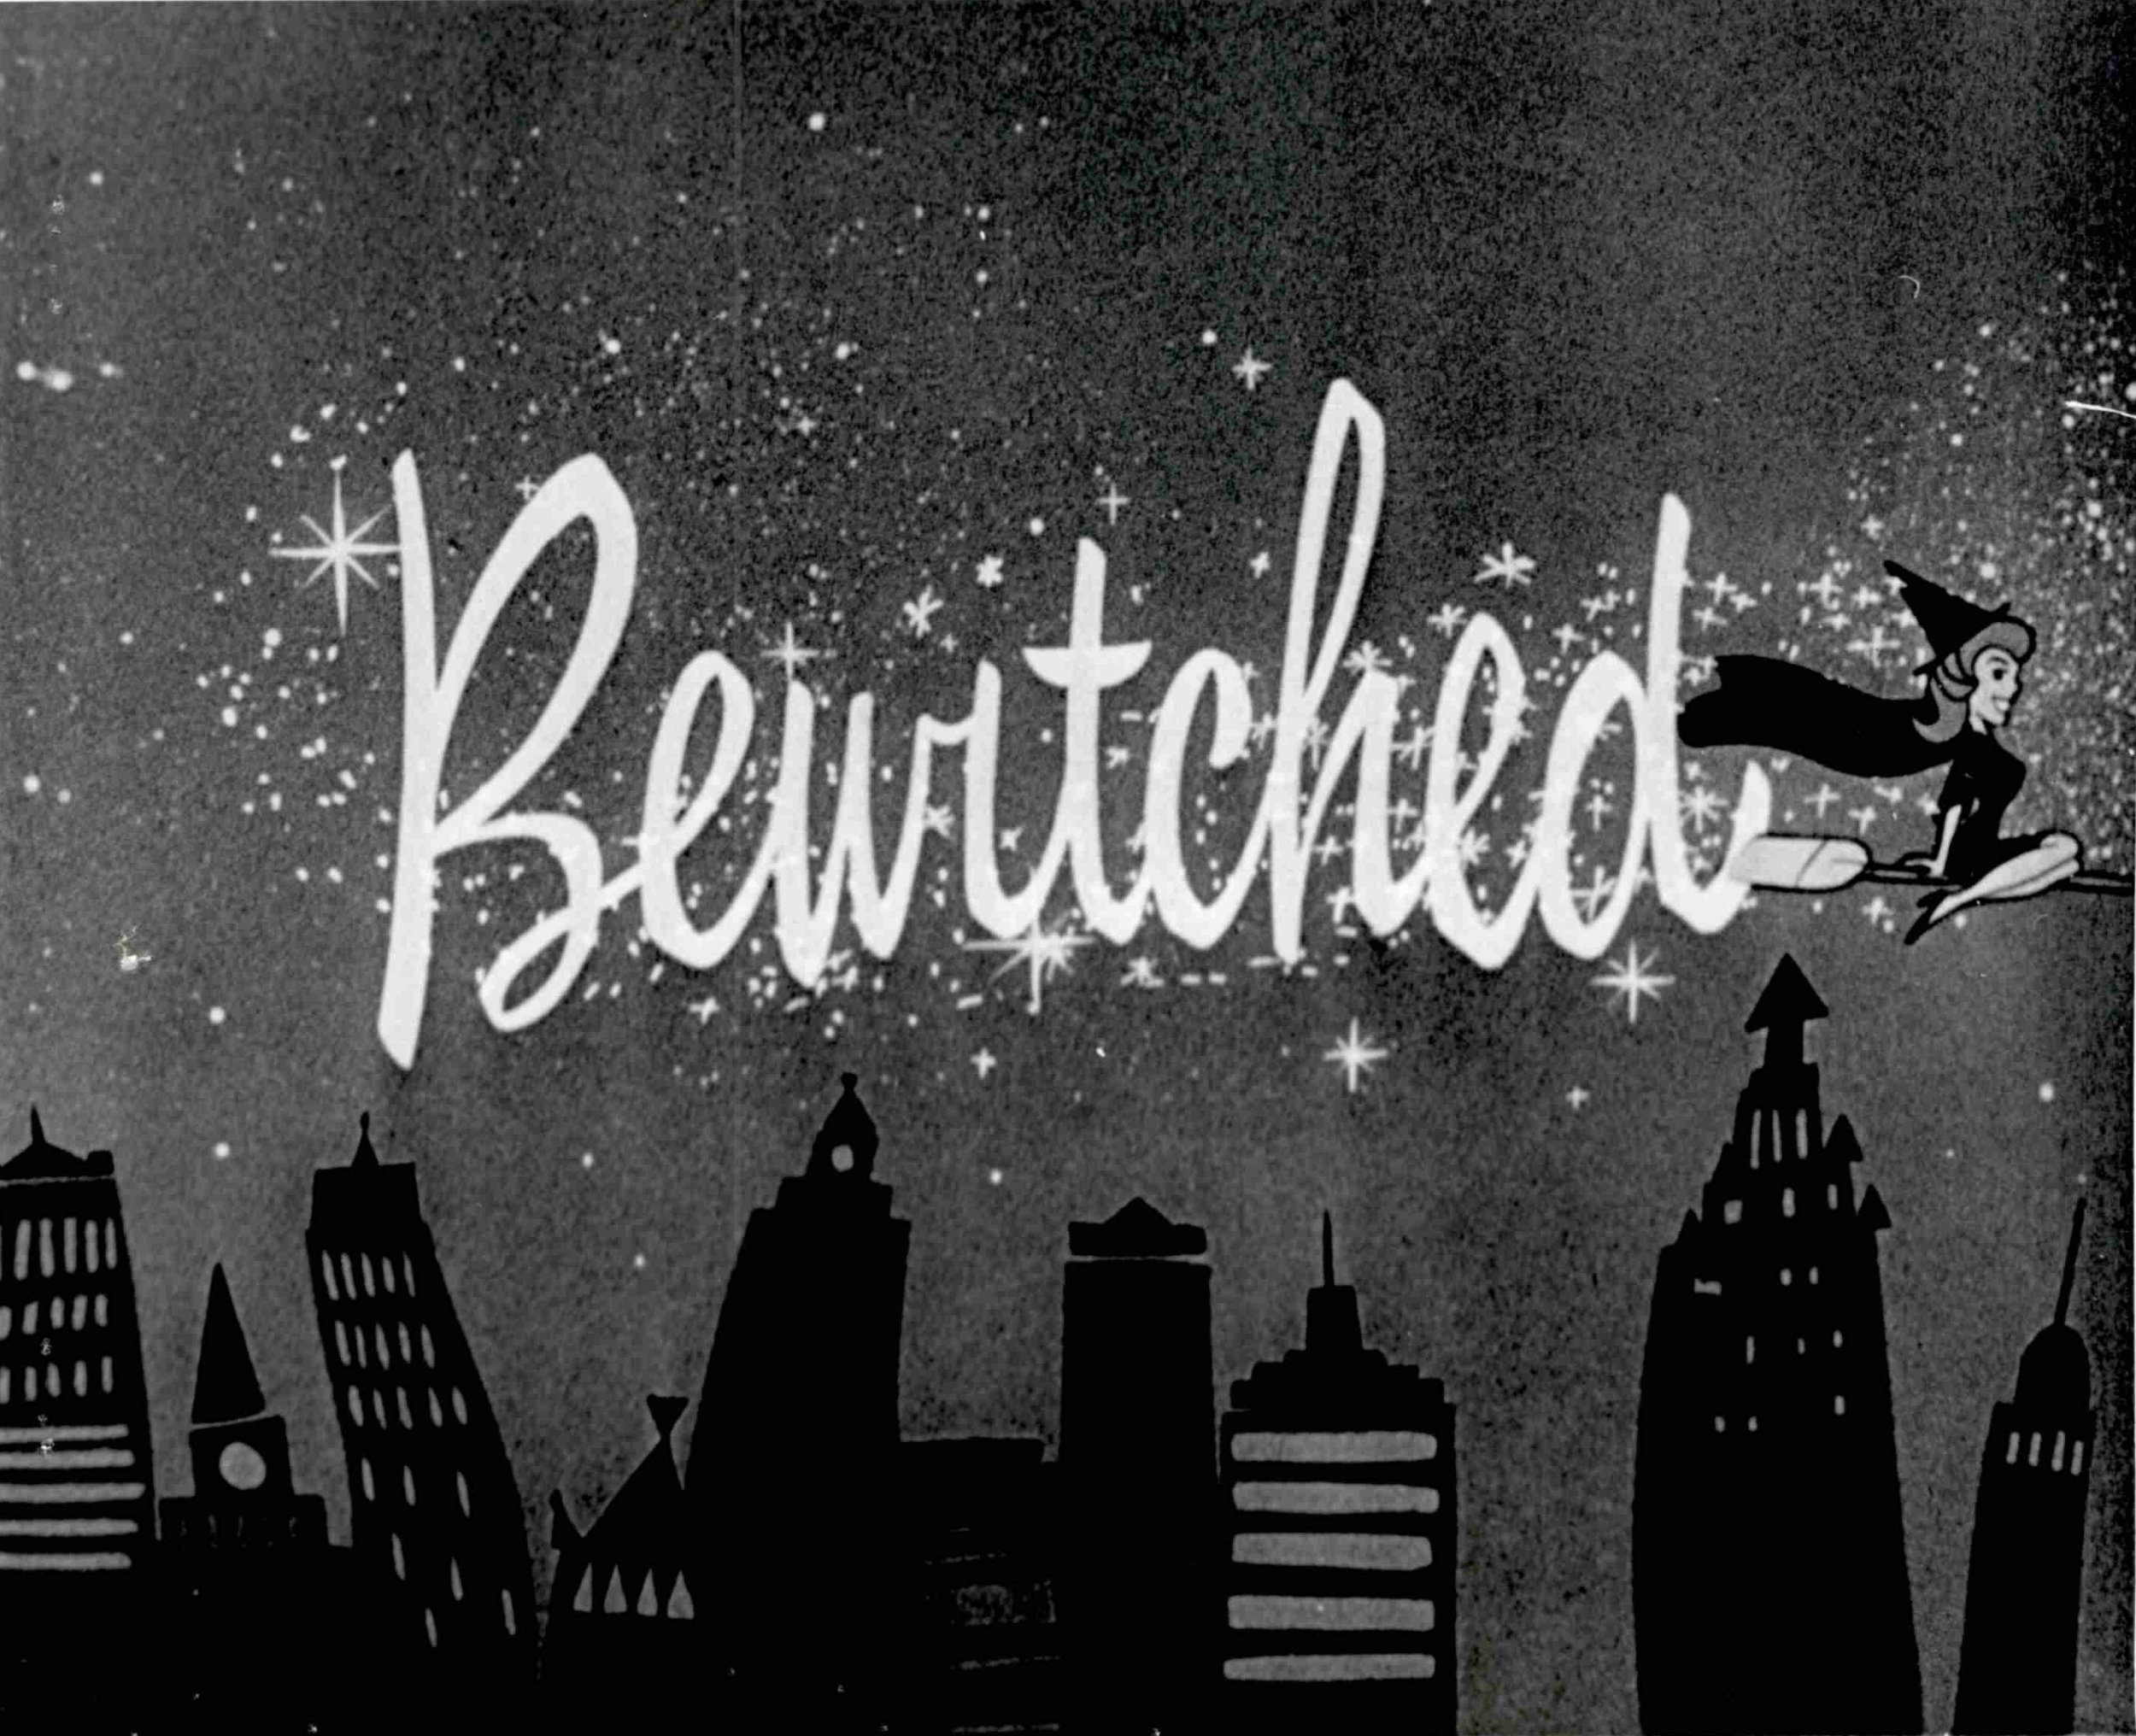 bewtitched